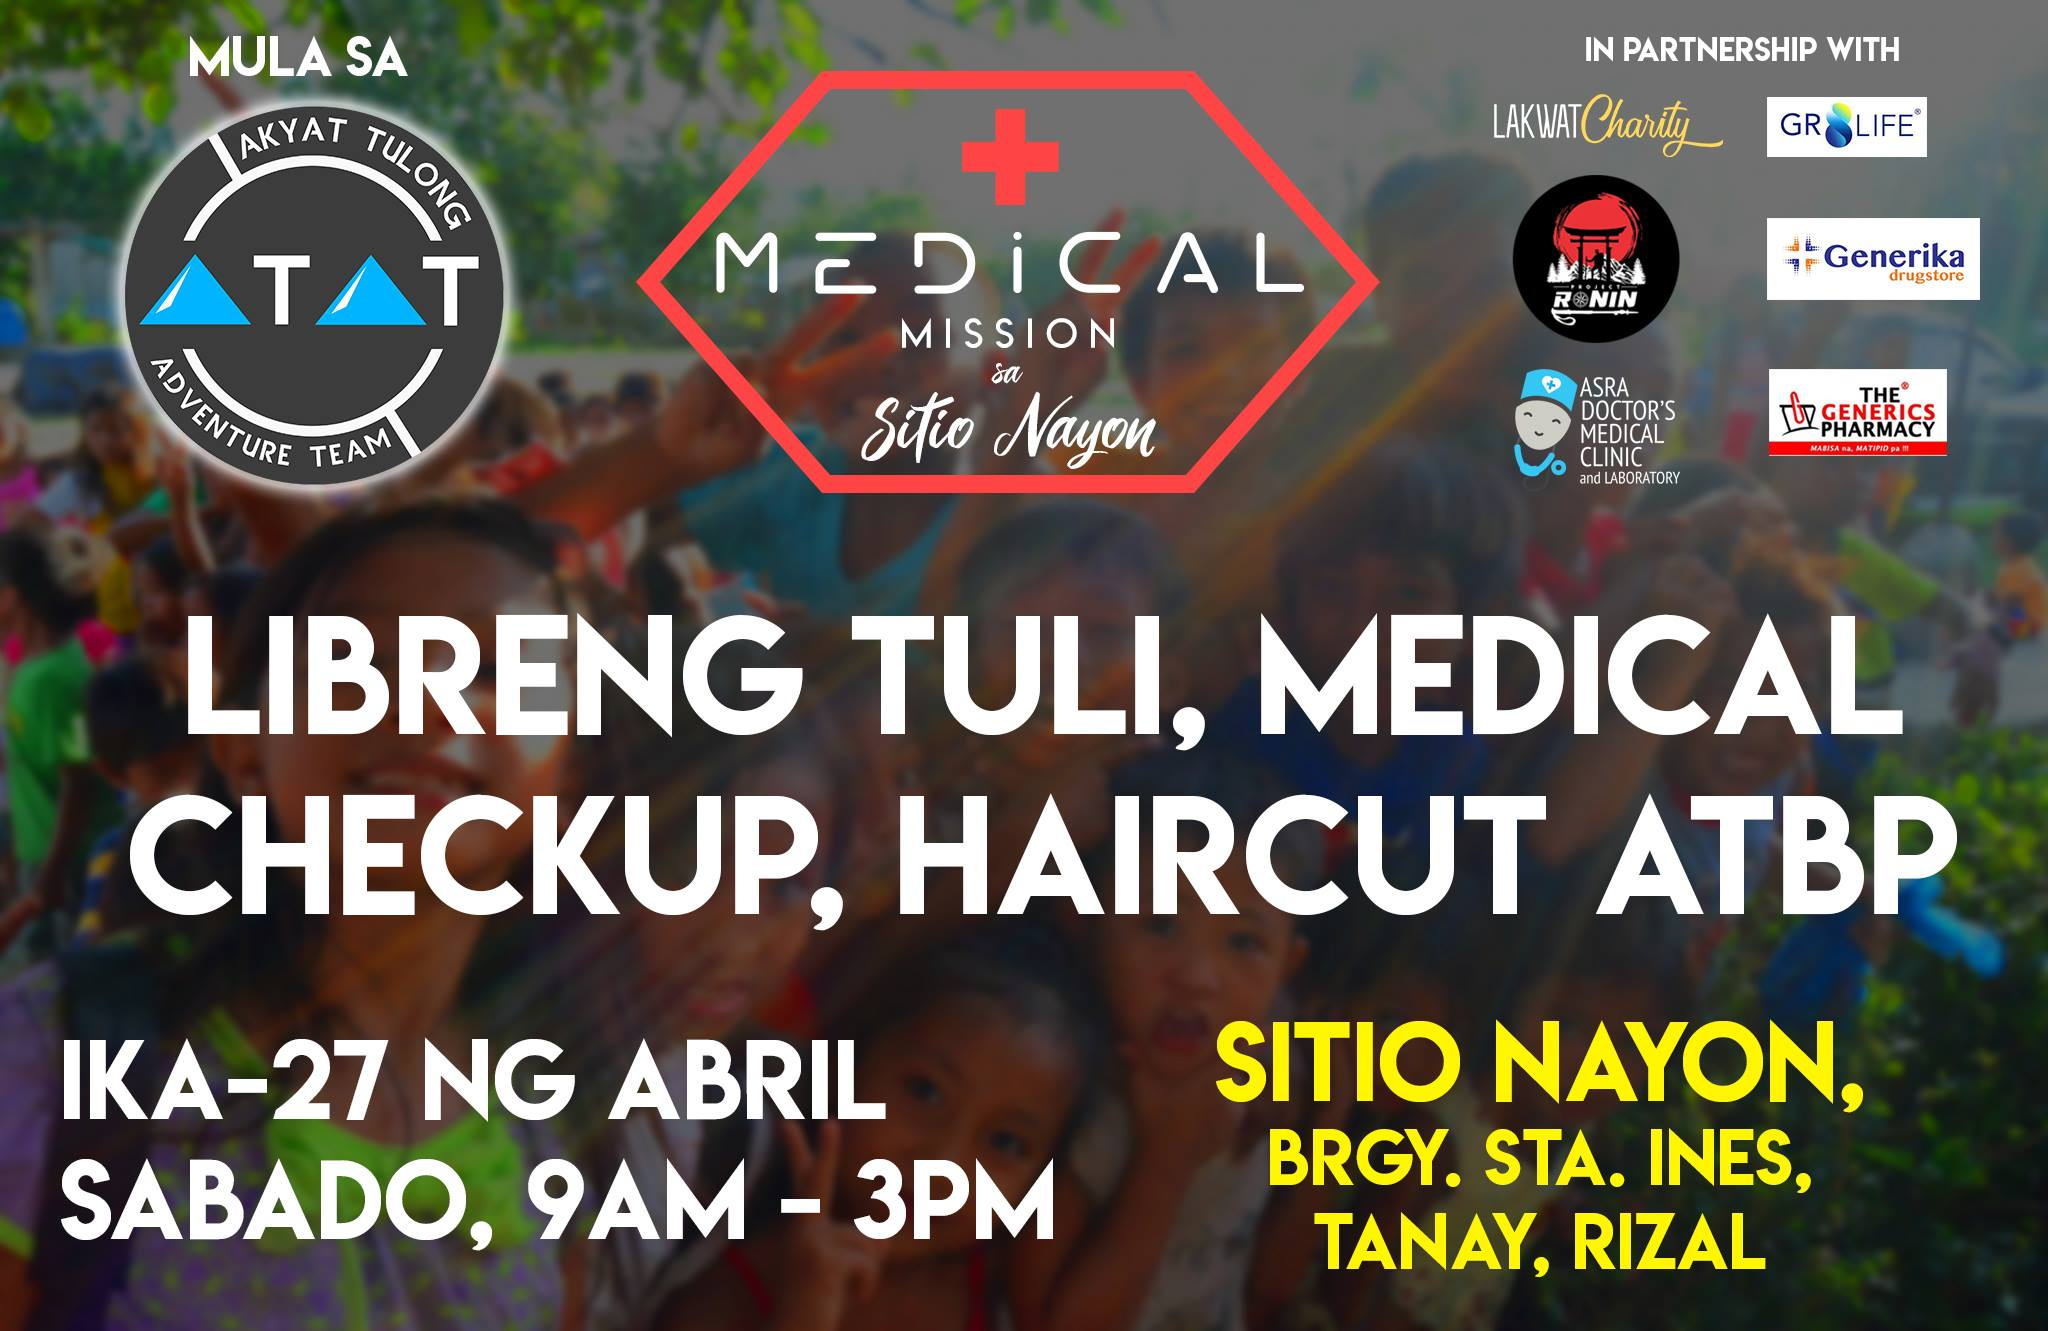 libreng_tuli_medical_checkup_haircut_atbp